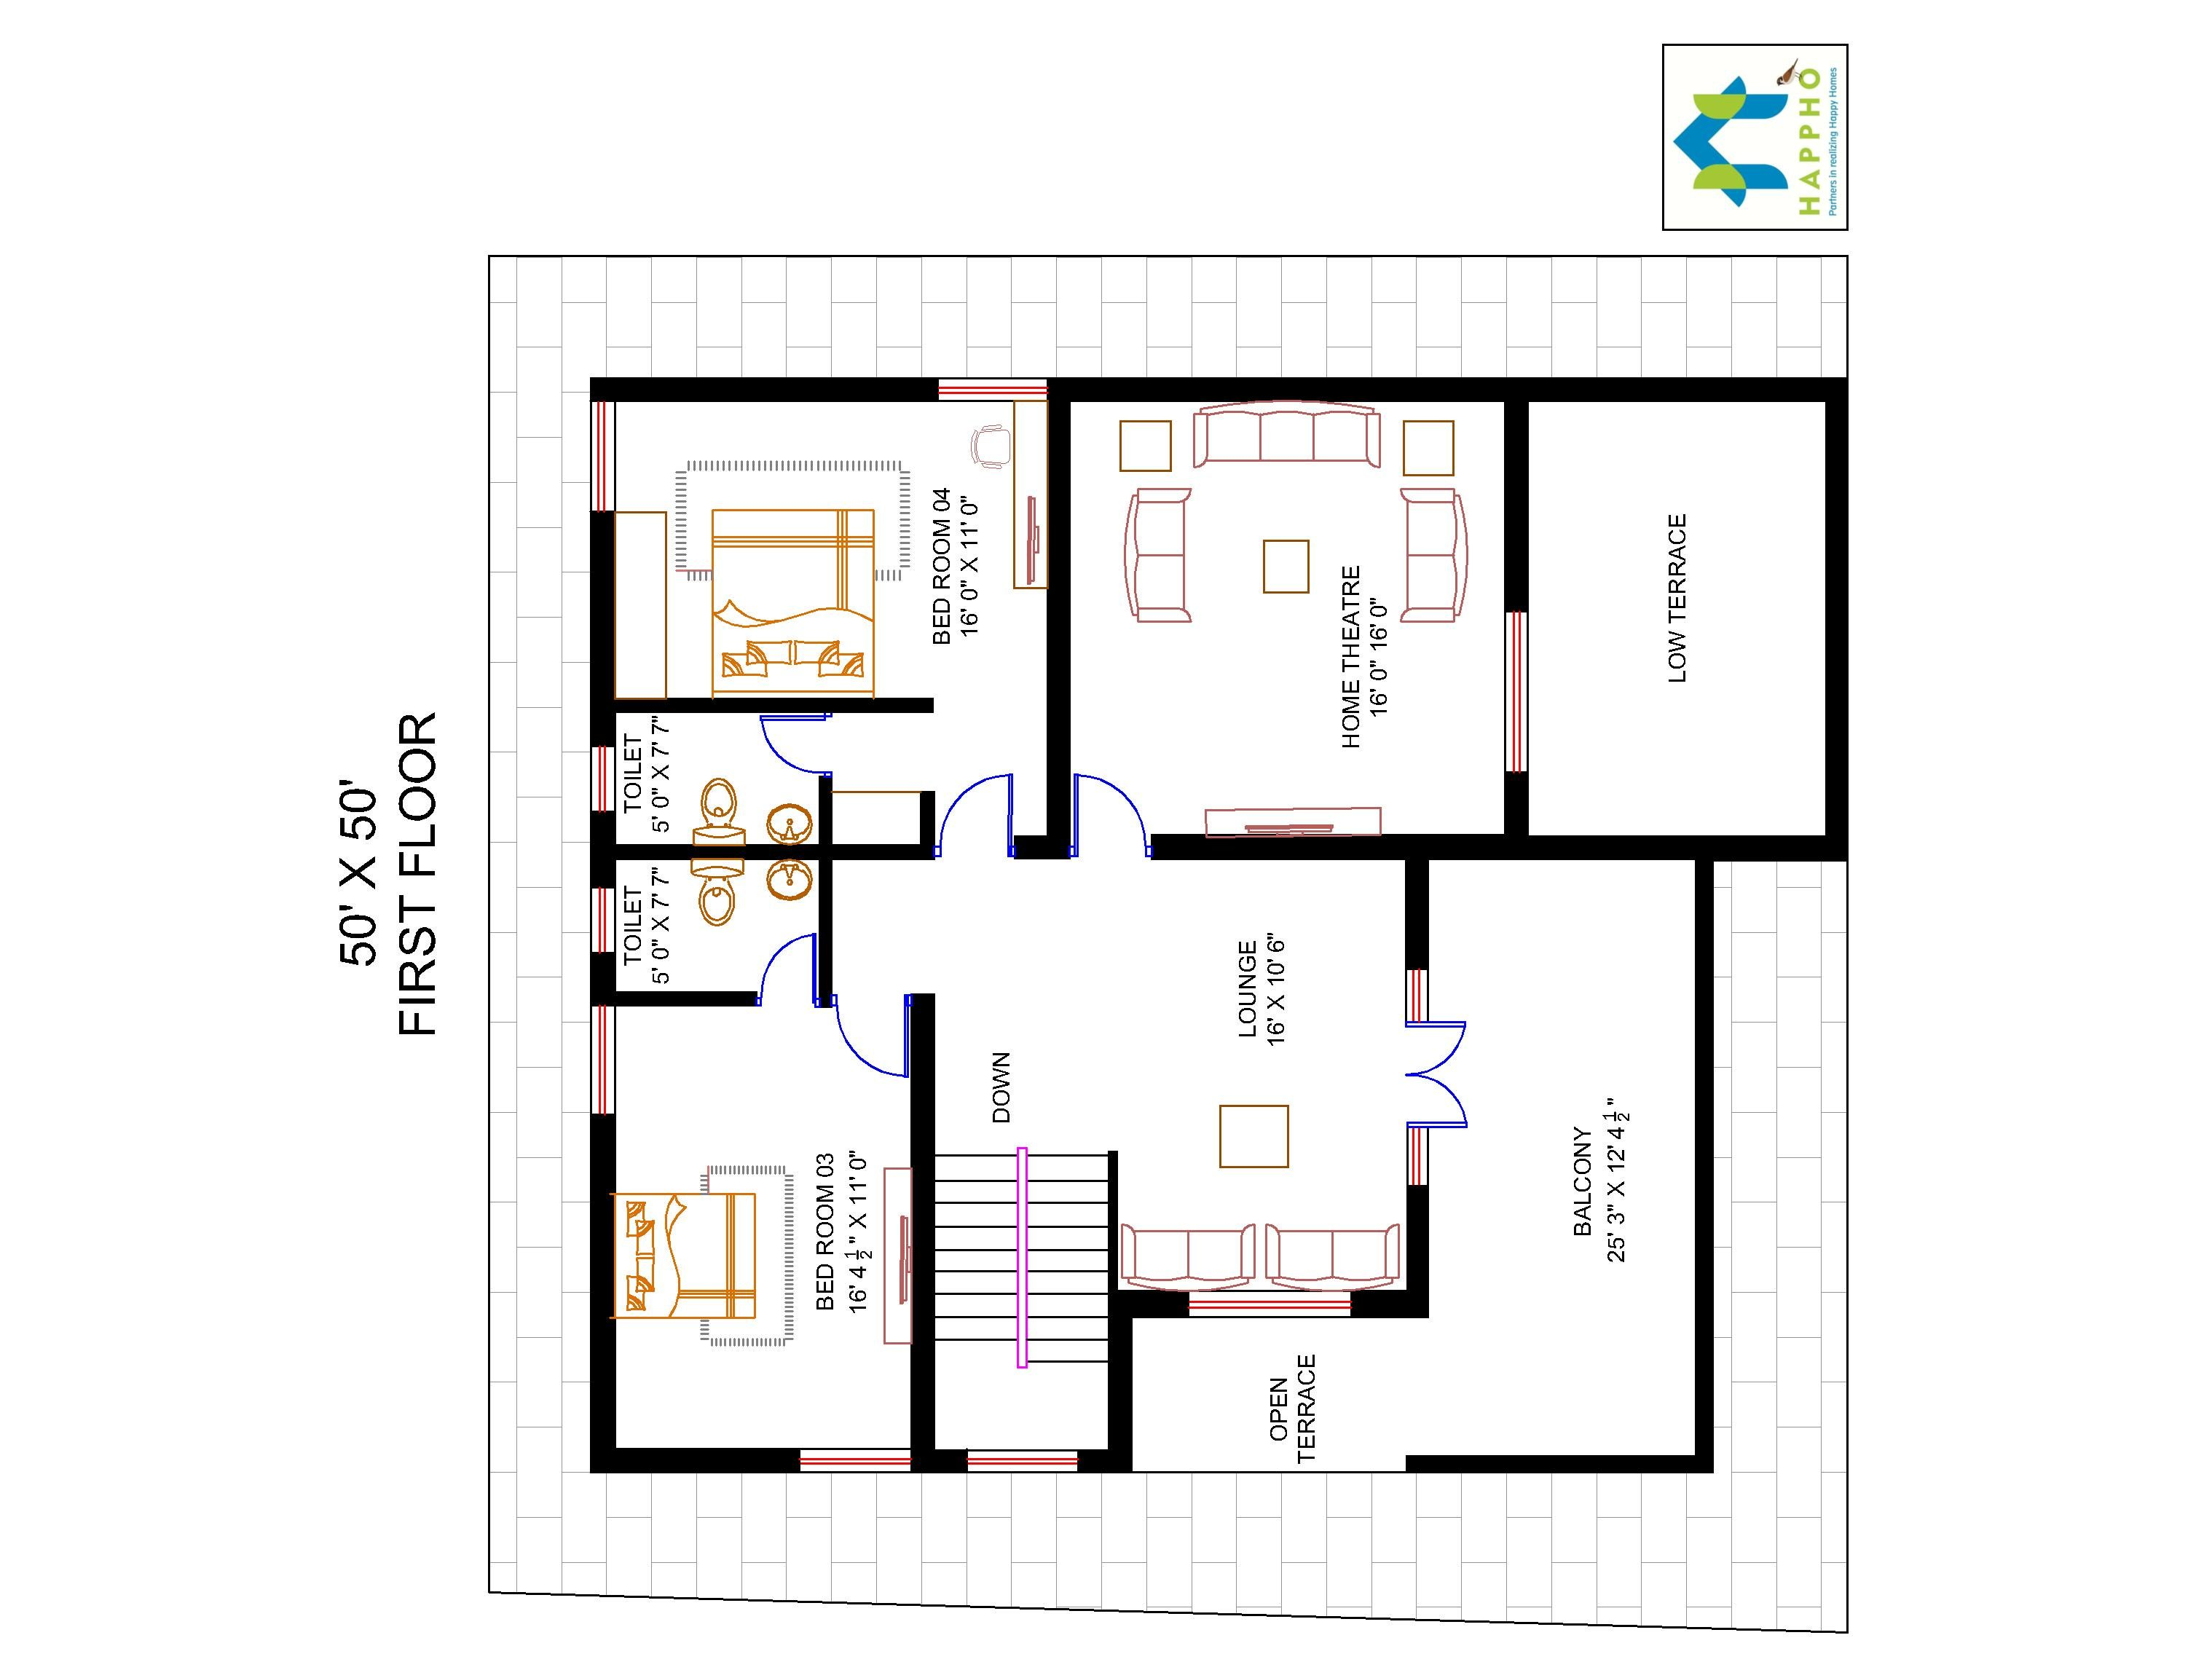 4 bhk floor plan for 50 x 50 plot 2500 square feet 278 for Four bhk bungalow plan